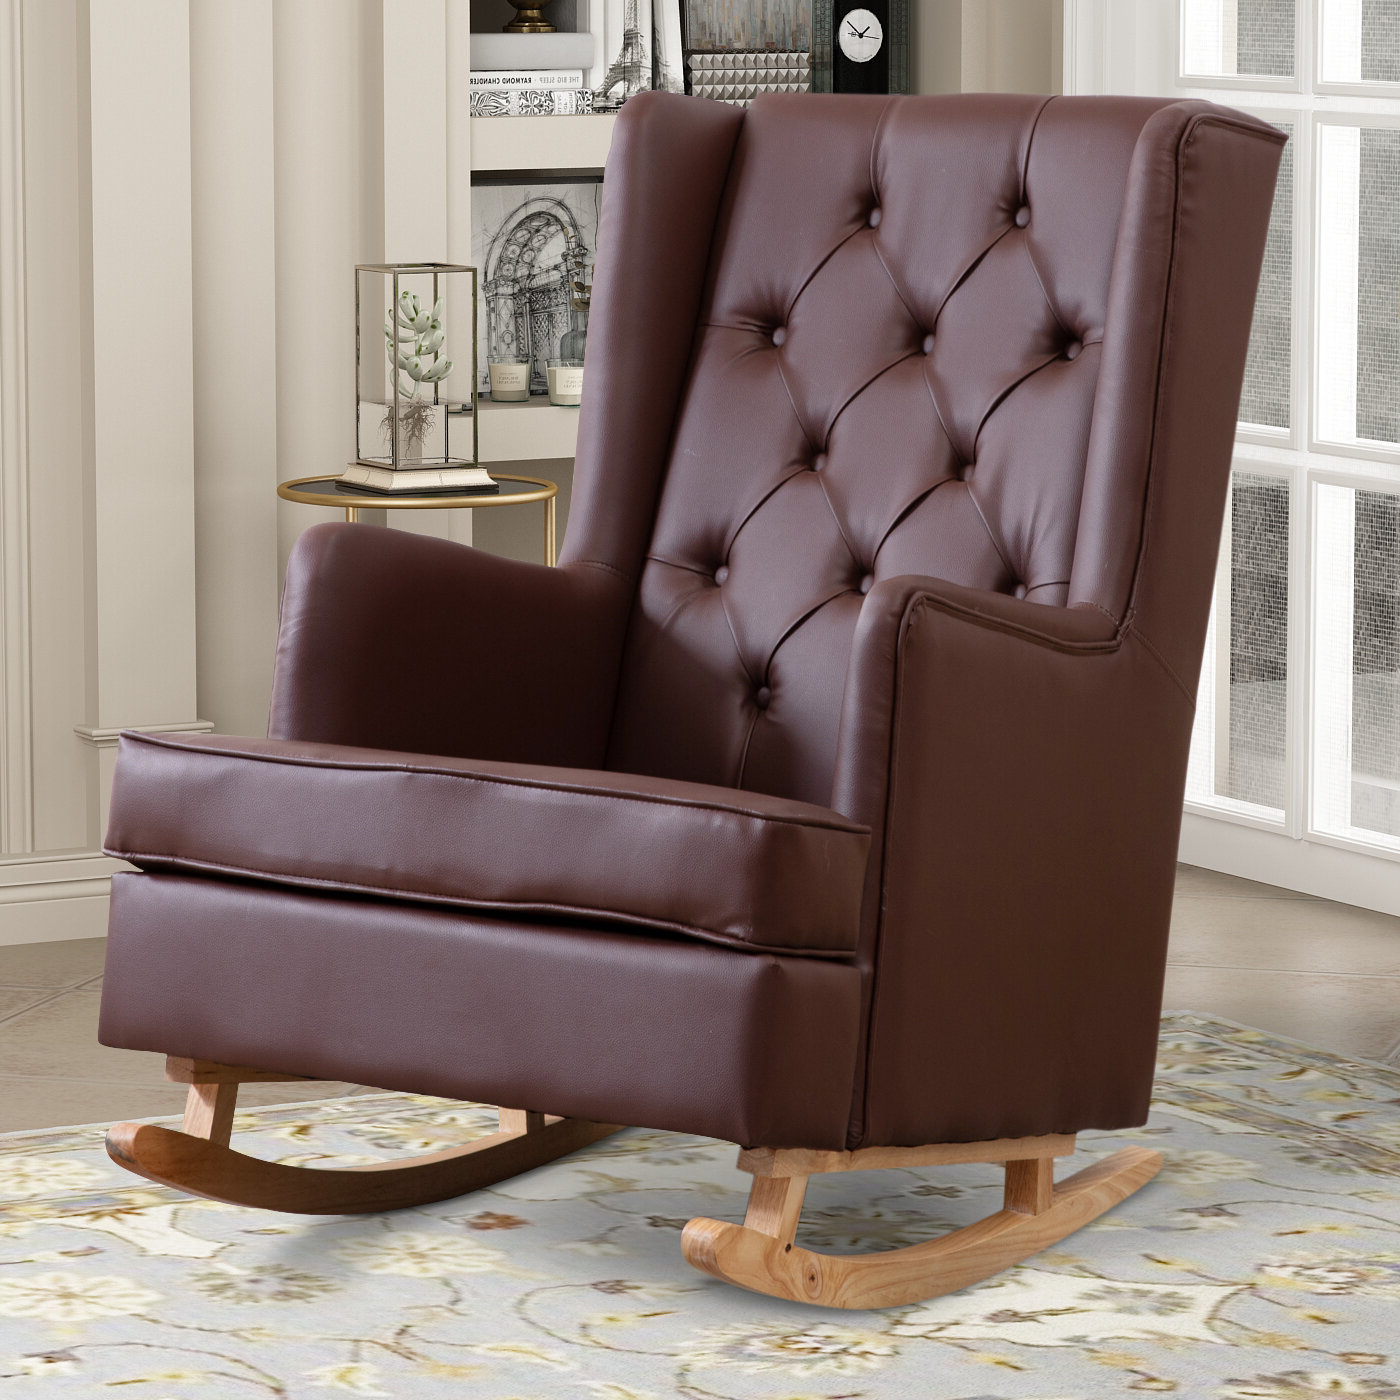 Faux Leather George Oliver Accent Chairs You'll Love In 2021 With Regard To Favorite Marisa Faux Leather Wingback Chairs (View 8 of 20)